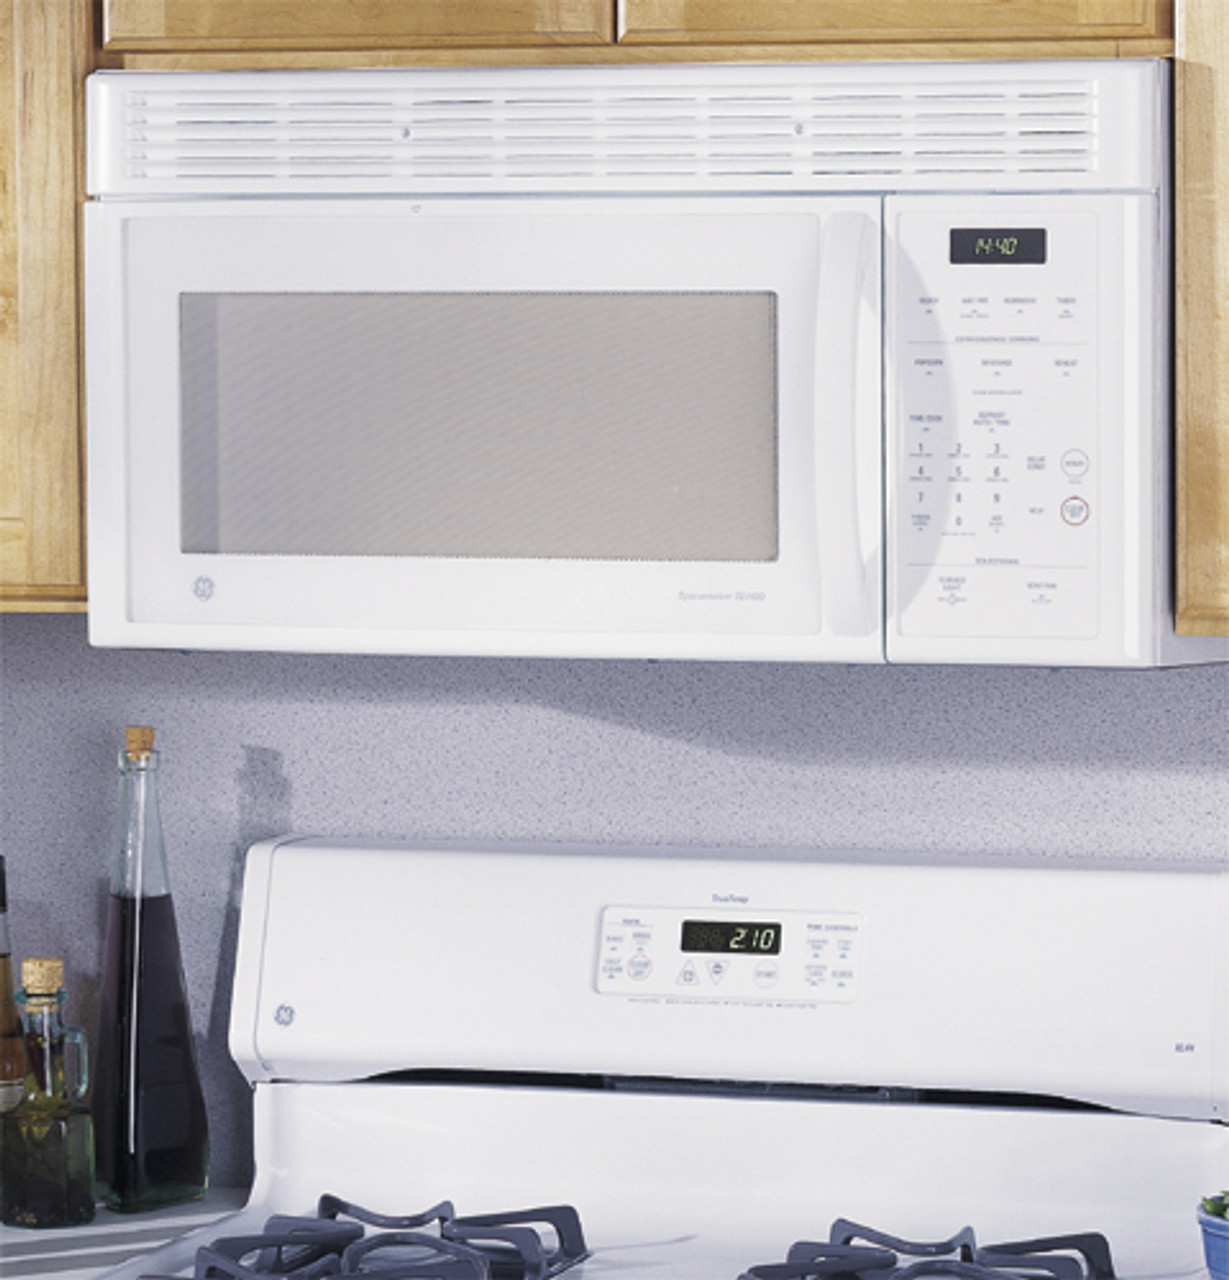 ge spacemaker xl over the range microwave oven jvm1410wc